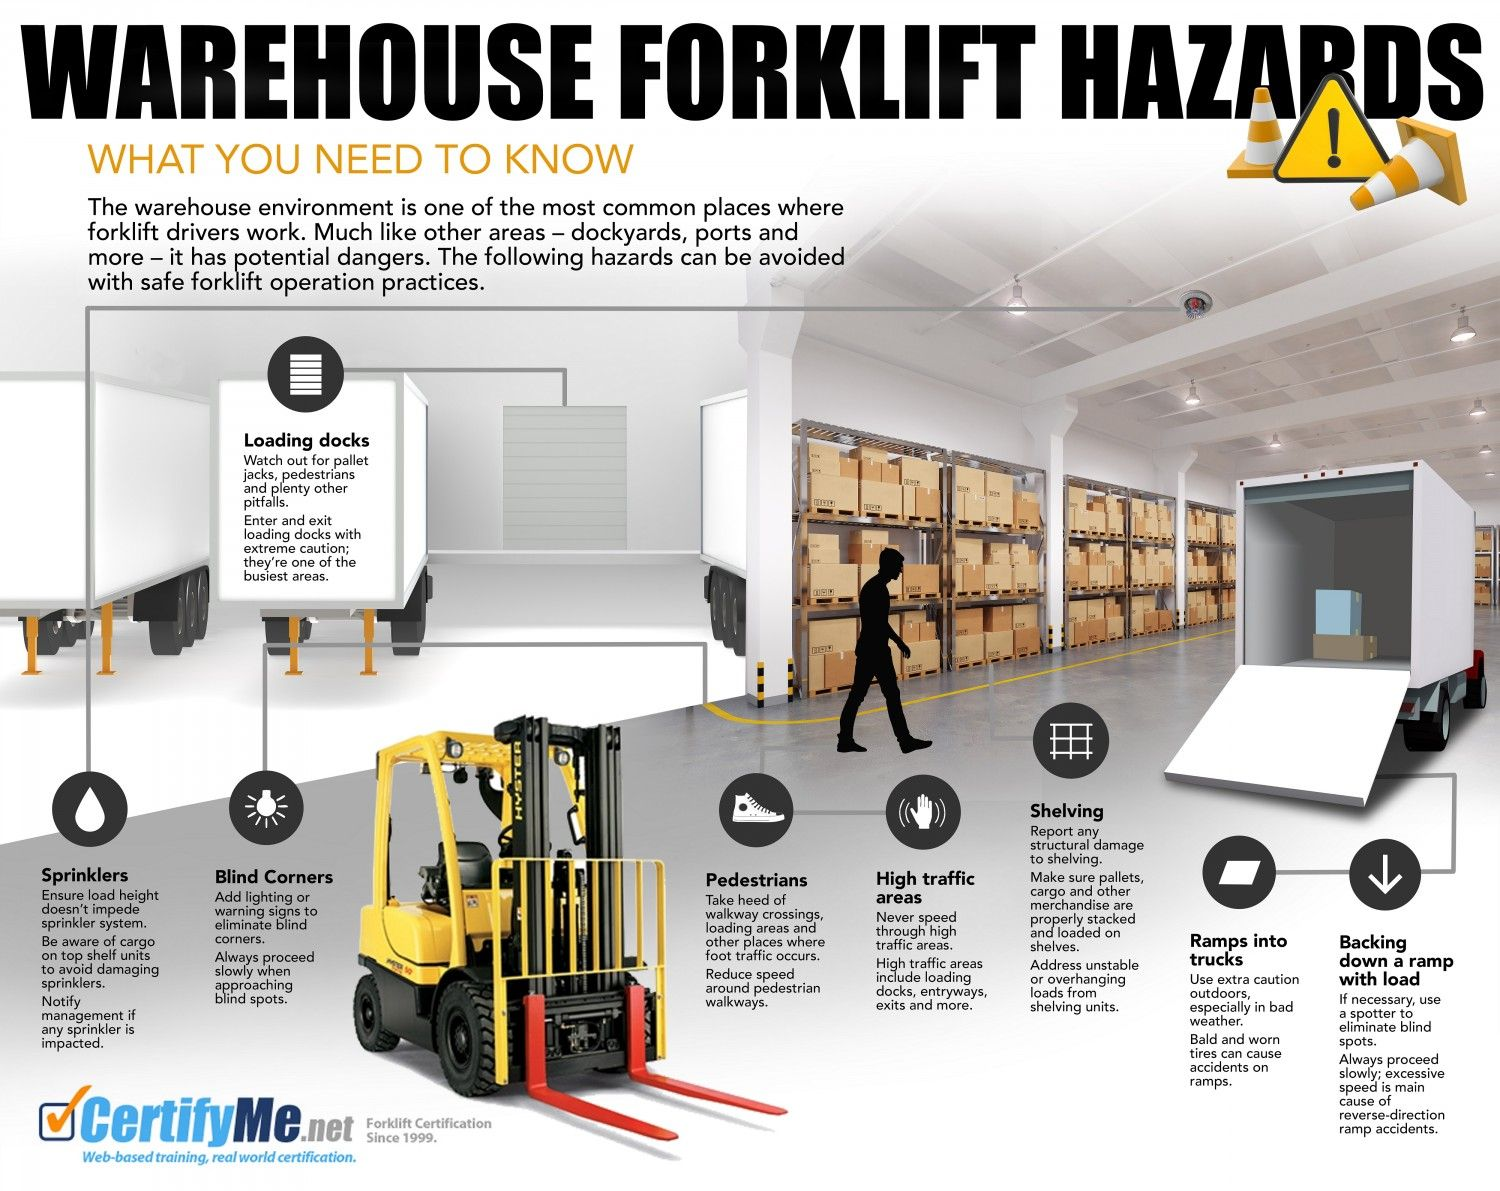 Warehouse Forklift Hazards Infographic Safety Pinterest Safety